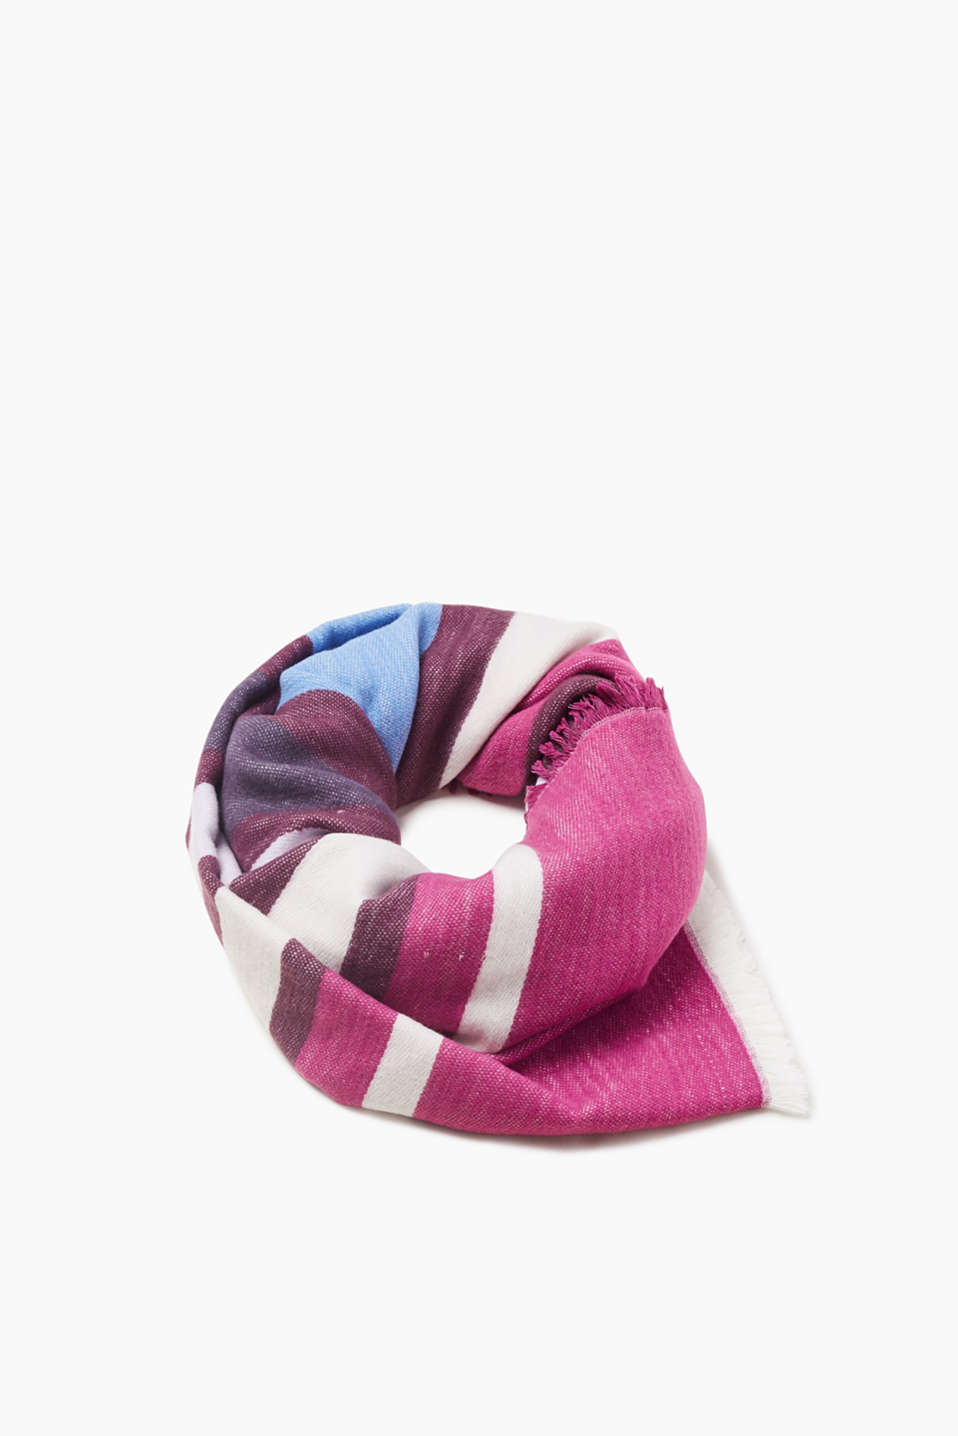 We love colour blocking! The vibrant stripes make this scarf extremely eye-catching.